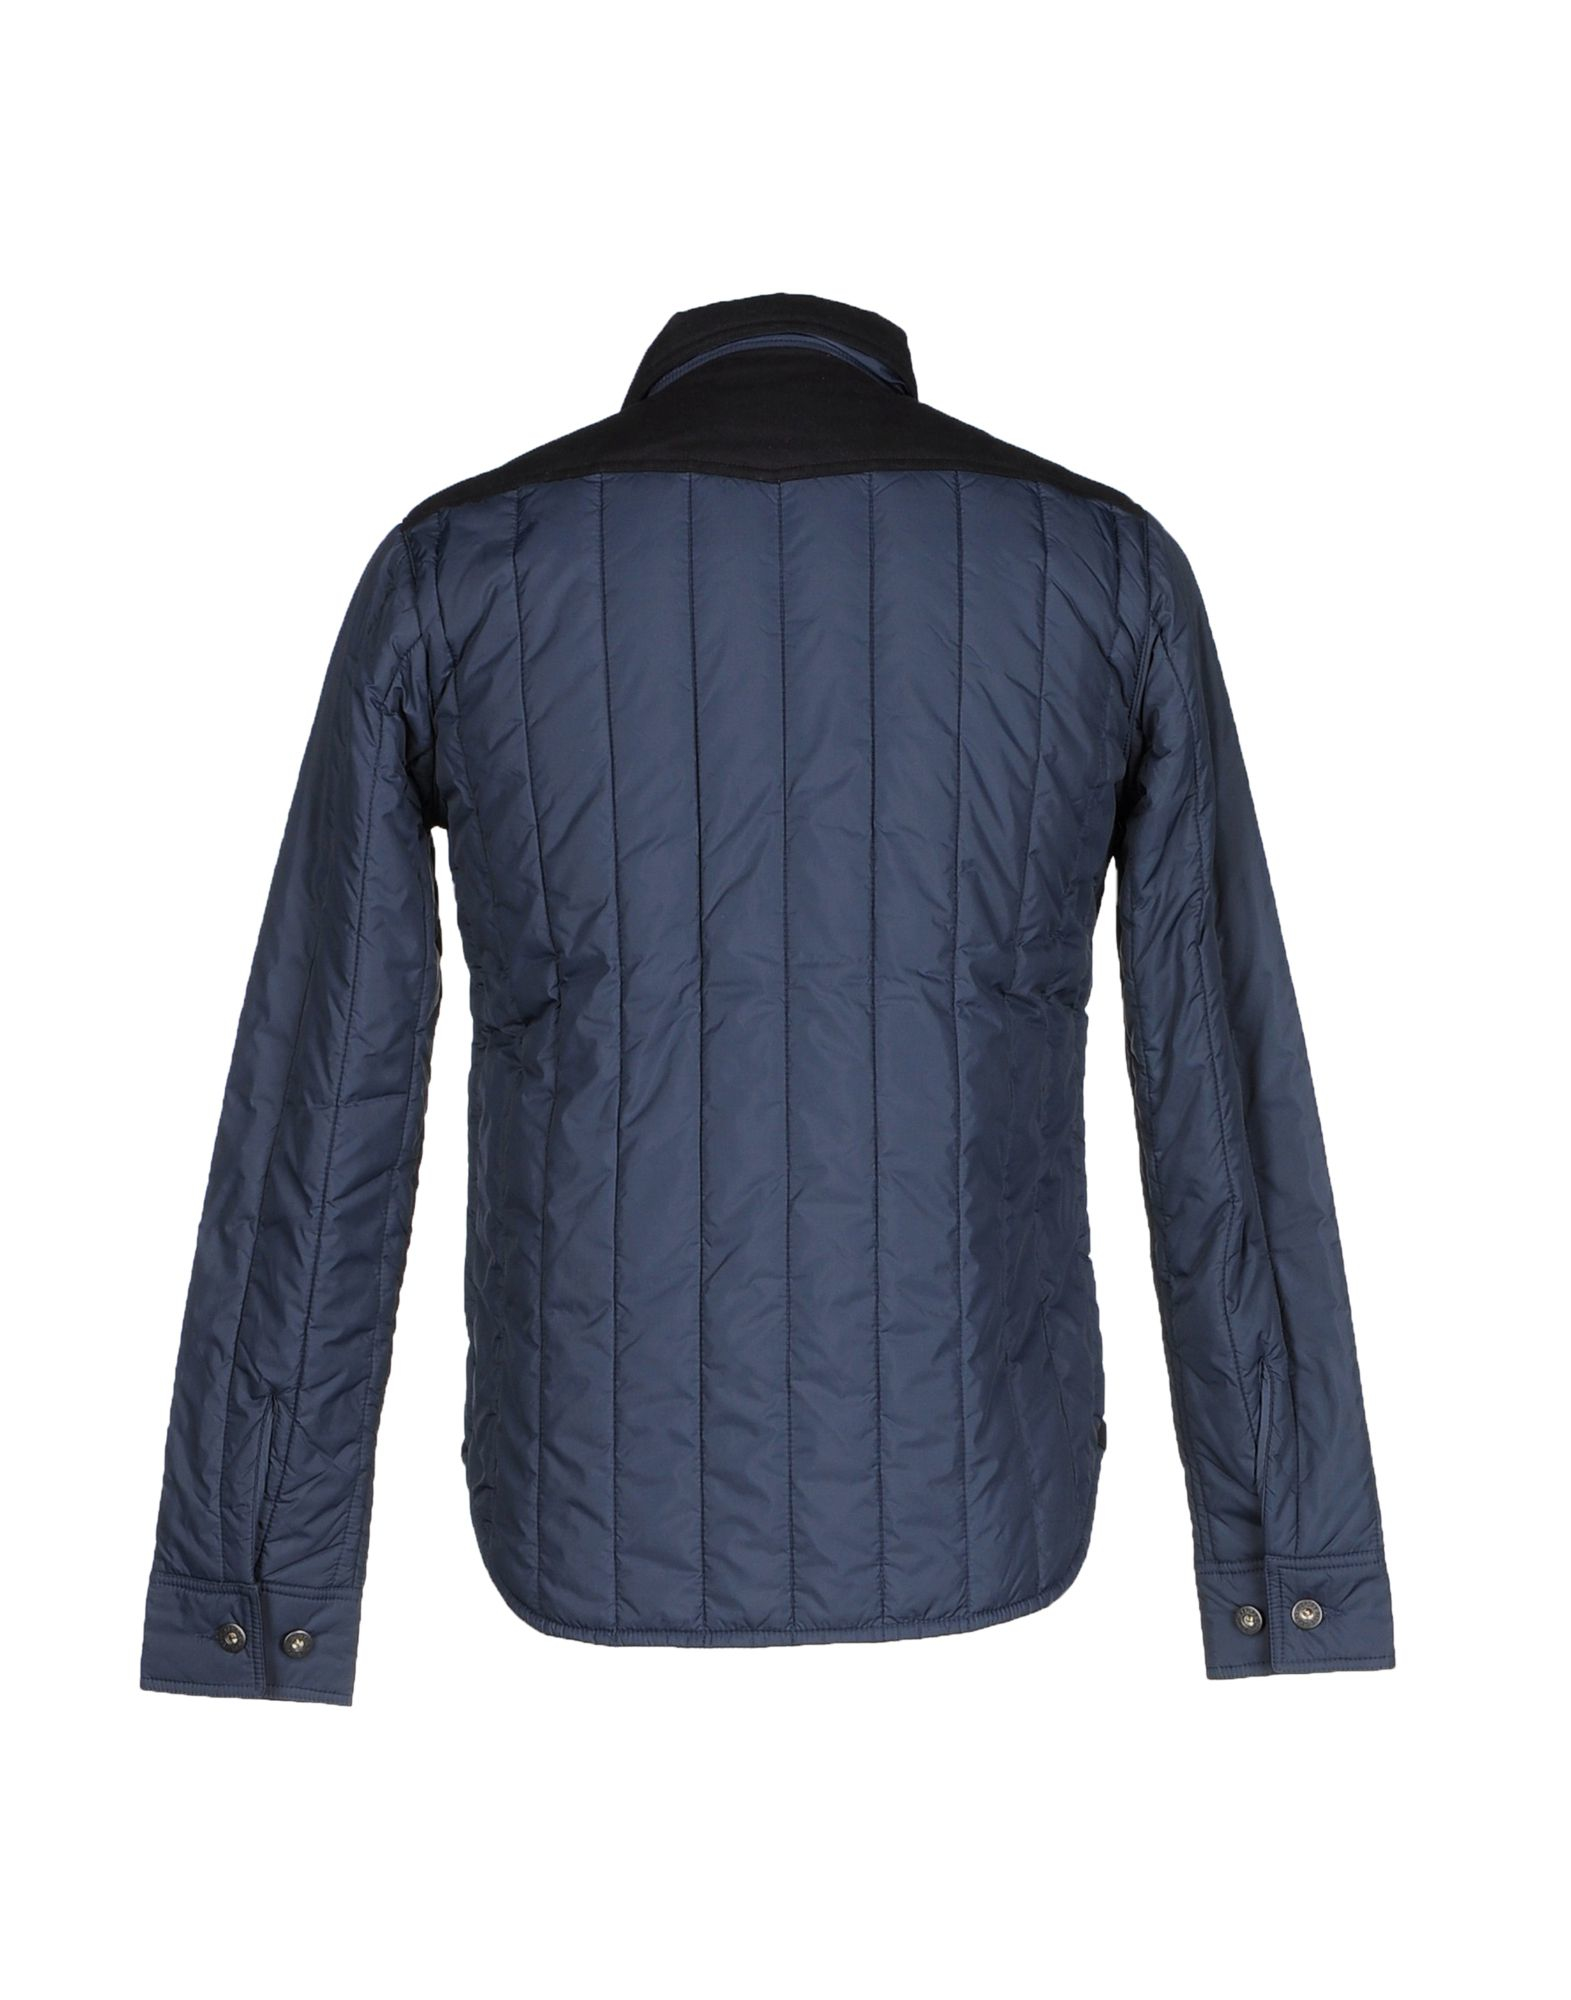 lyst replay jacket in blue for men